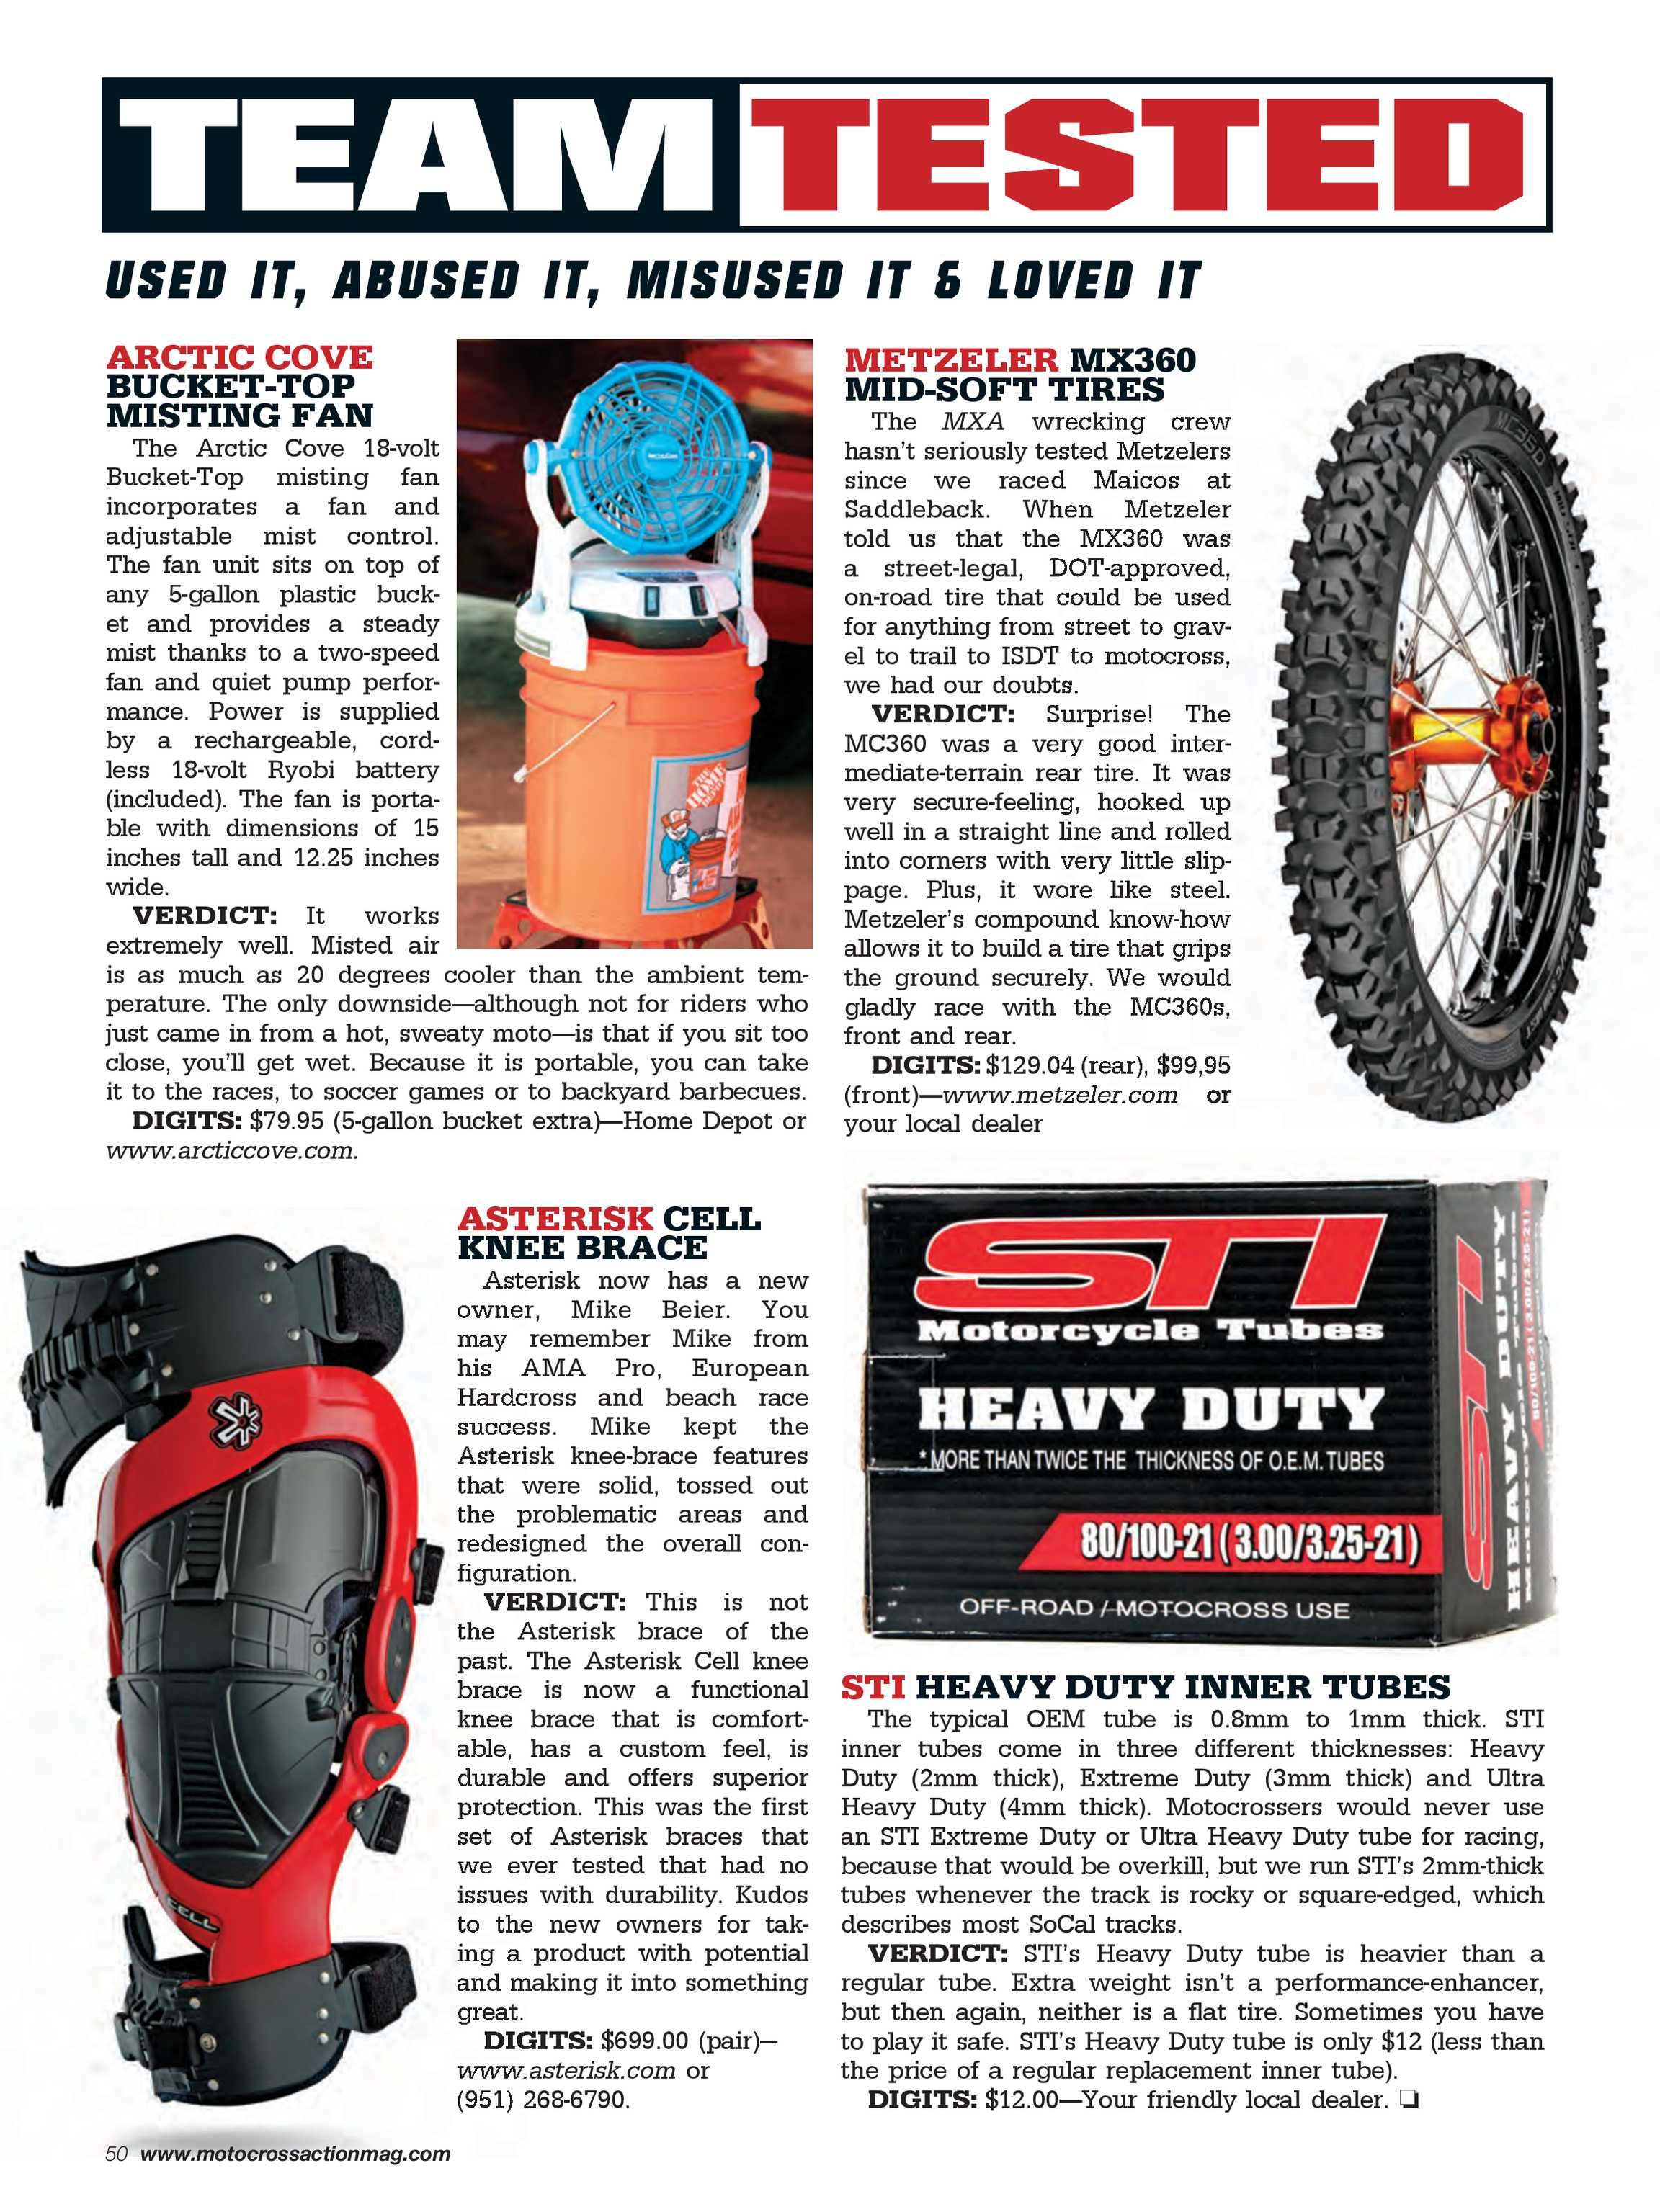 50 Zu 50 Motocross Action Magazine November 2017 Page 50